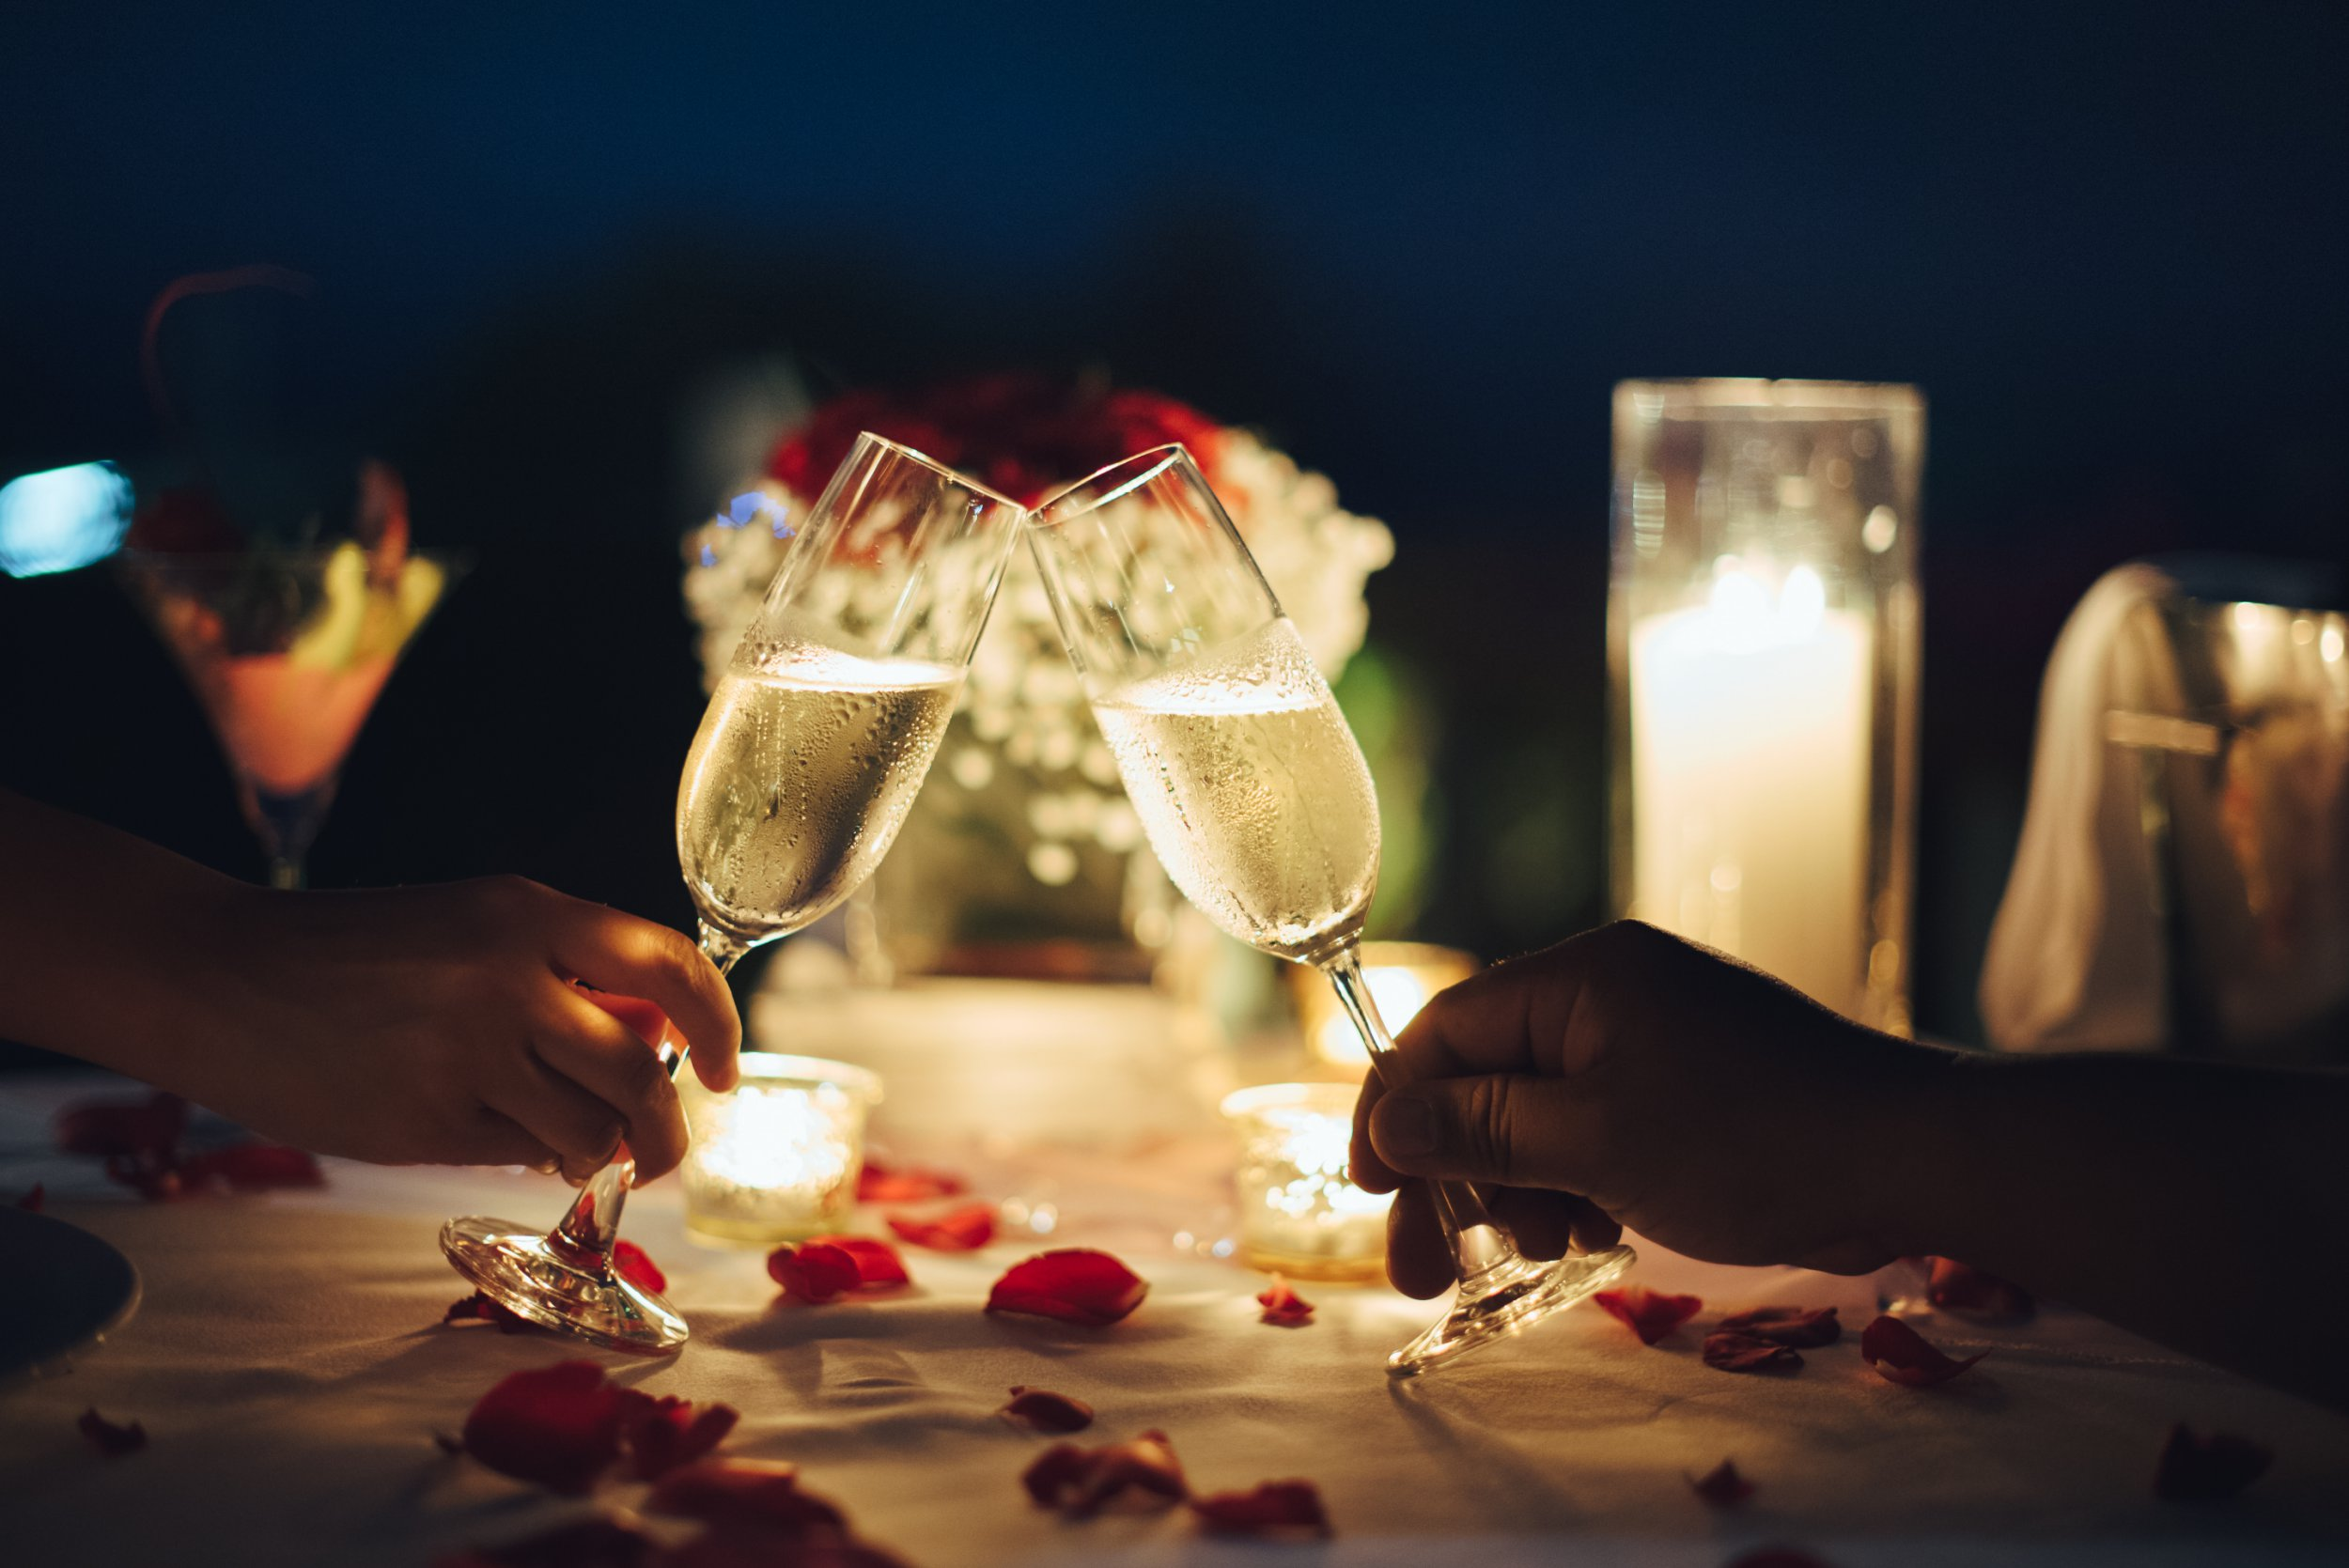 Romantic candlelight dinner table setup. Man & Woman hold glass of Champaign.; Shutterstock ID 1010722126; Purchase Order: -